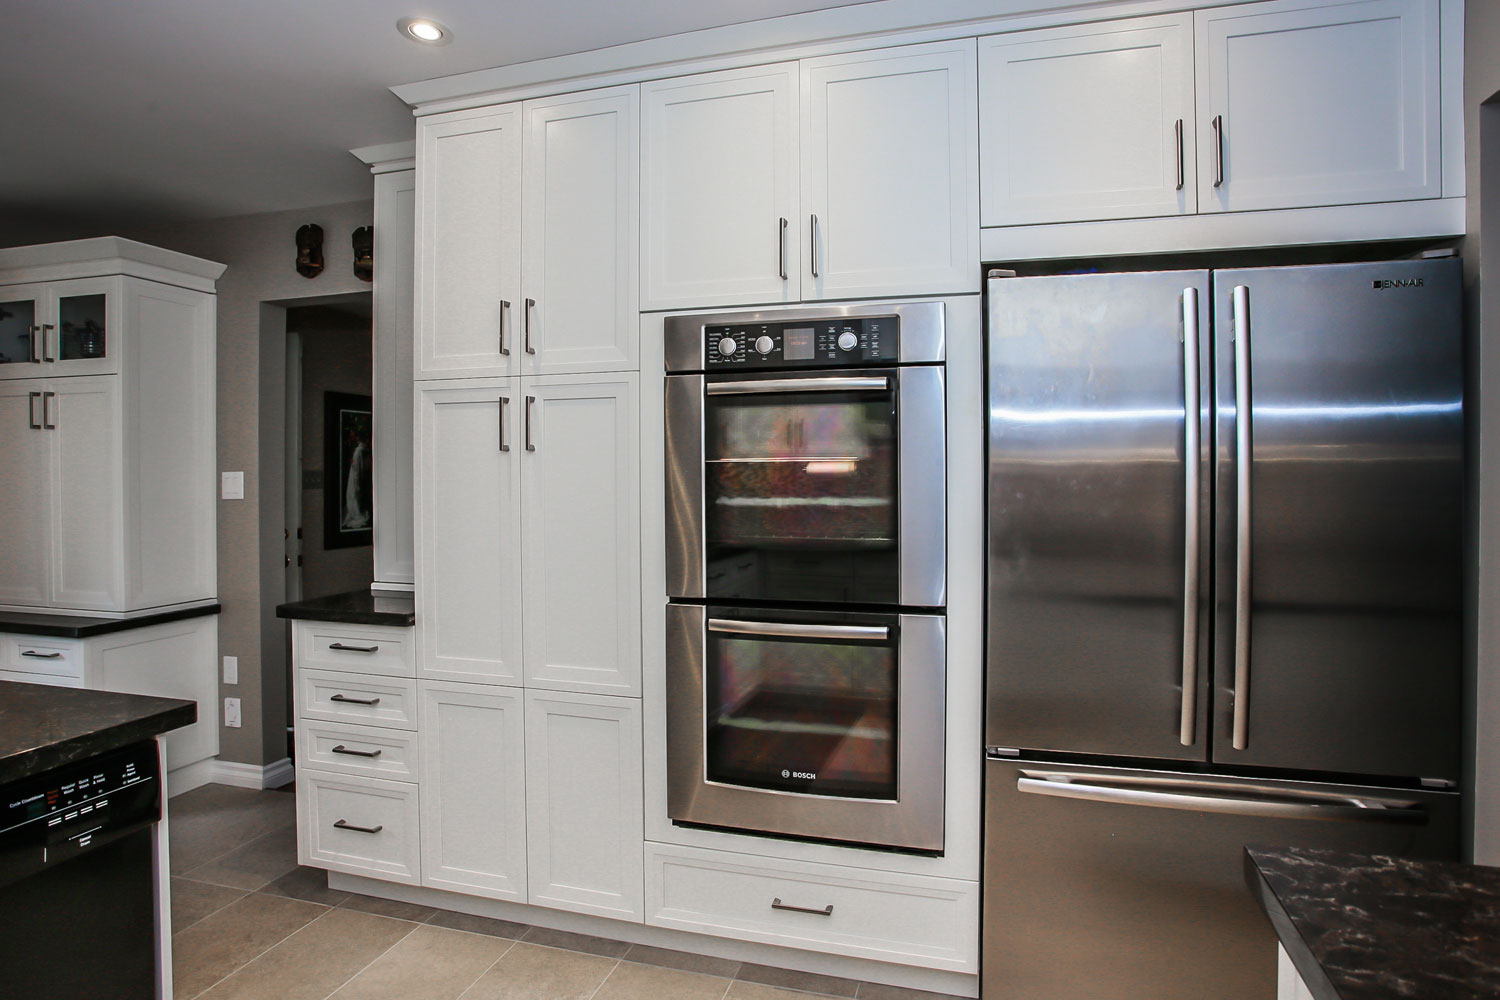 Stacked wall ovens stainless steel